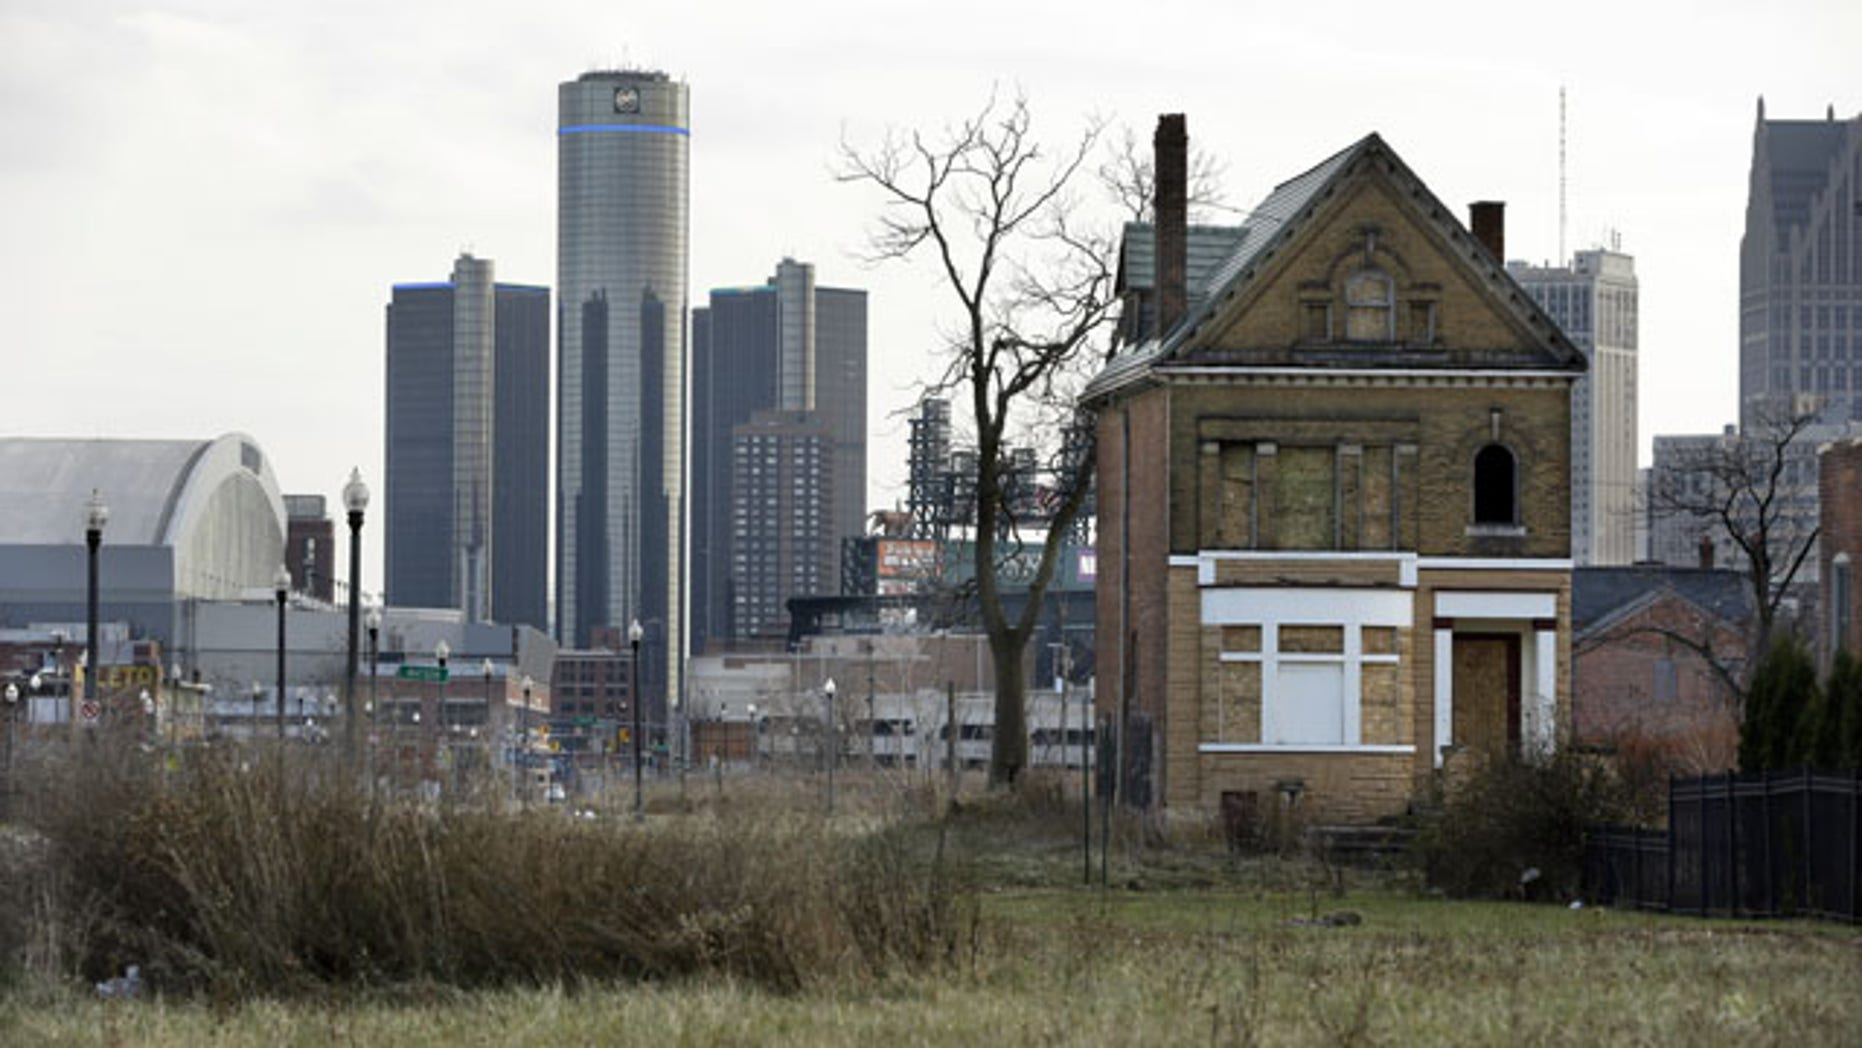 December 2, 2013: An empty field in Brush Park, north of Detroit's downtown, is shown with an abandoned home. (AP Photo)